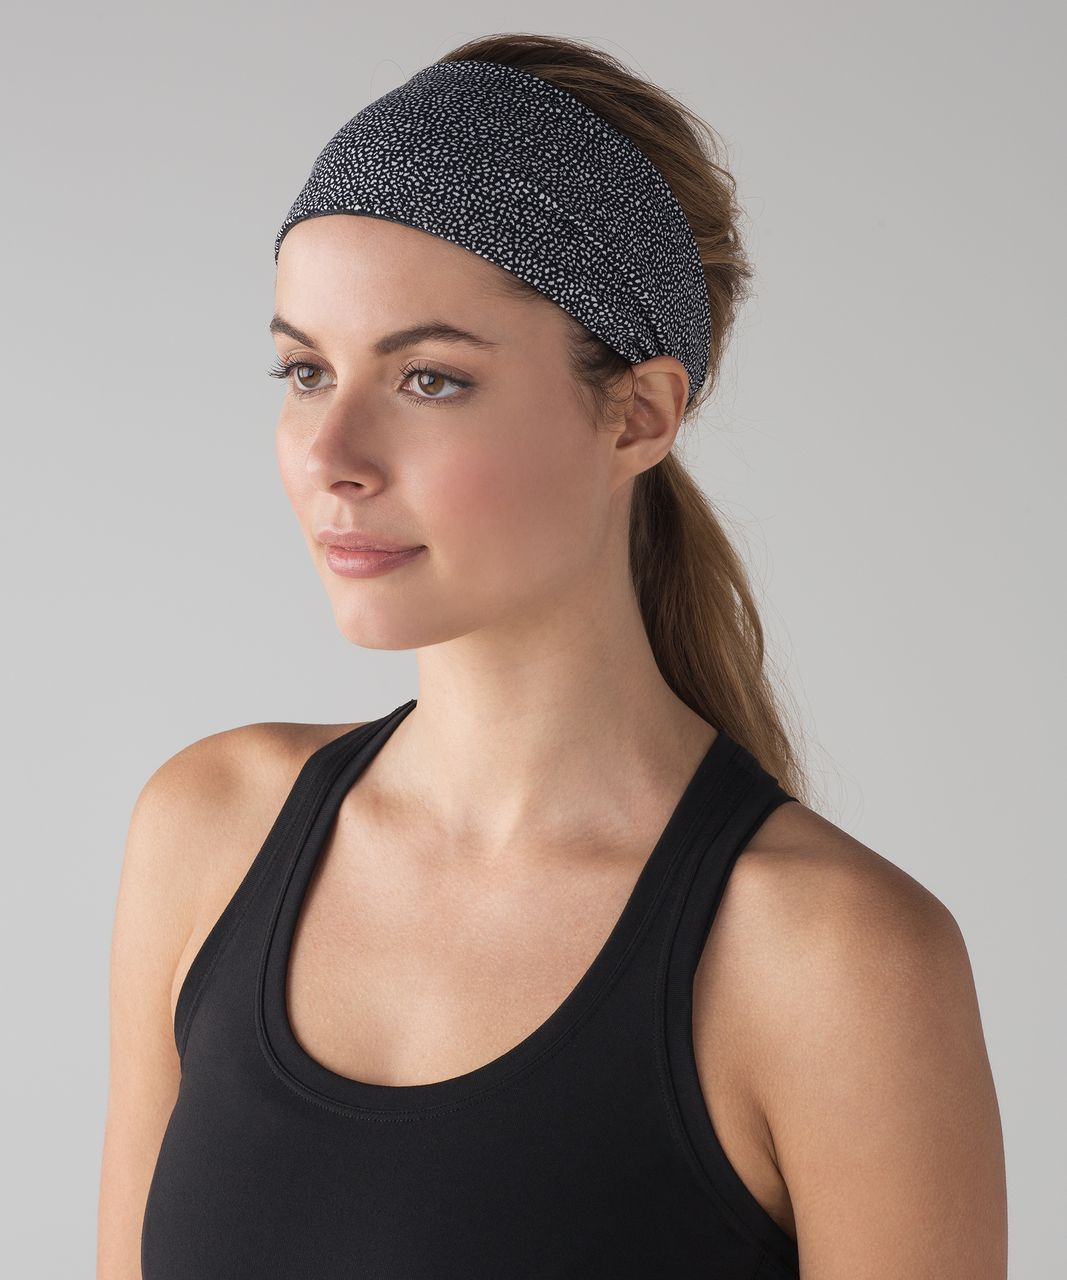 Lululemon Fringe Fighter Headband - Chakra Print Alpine White Black / Heathered Black (First Release)